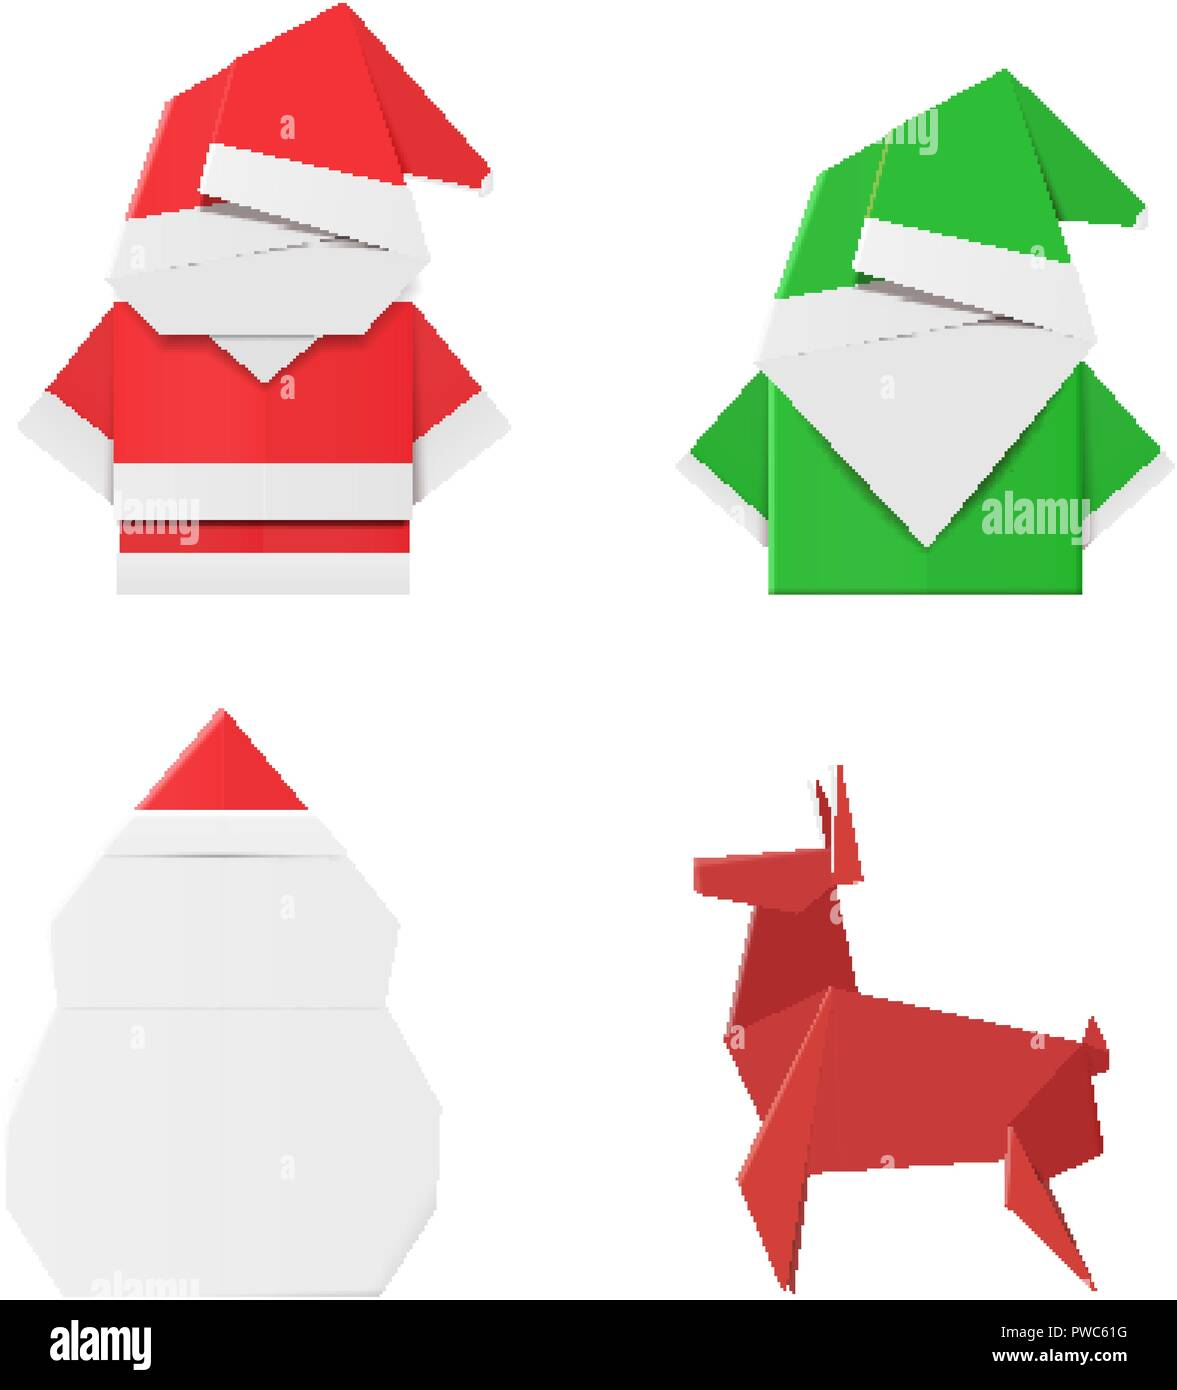 Set of origami Christmas characters: Santa Claus, elf, snowman and deer. Paper toys for decorations Stock Vector